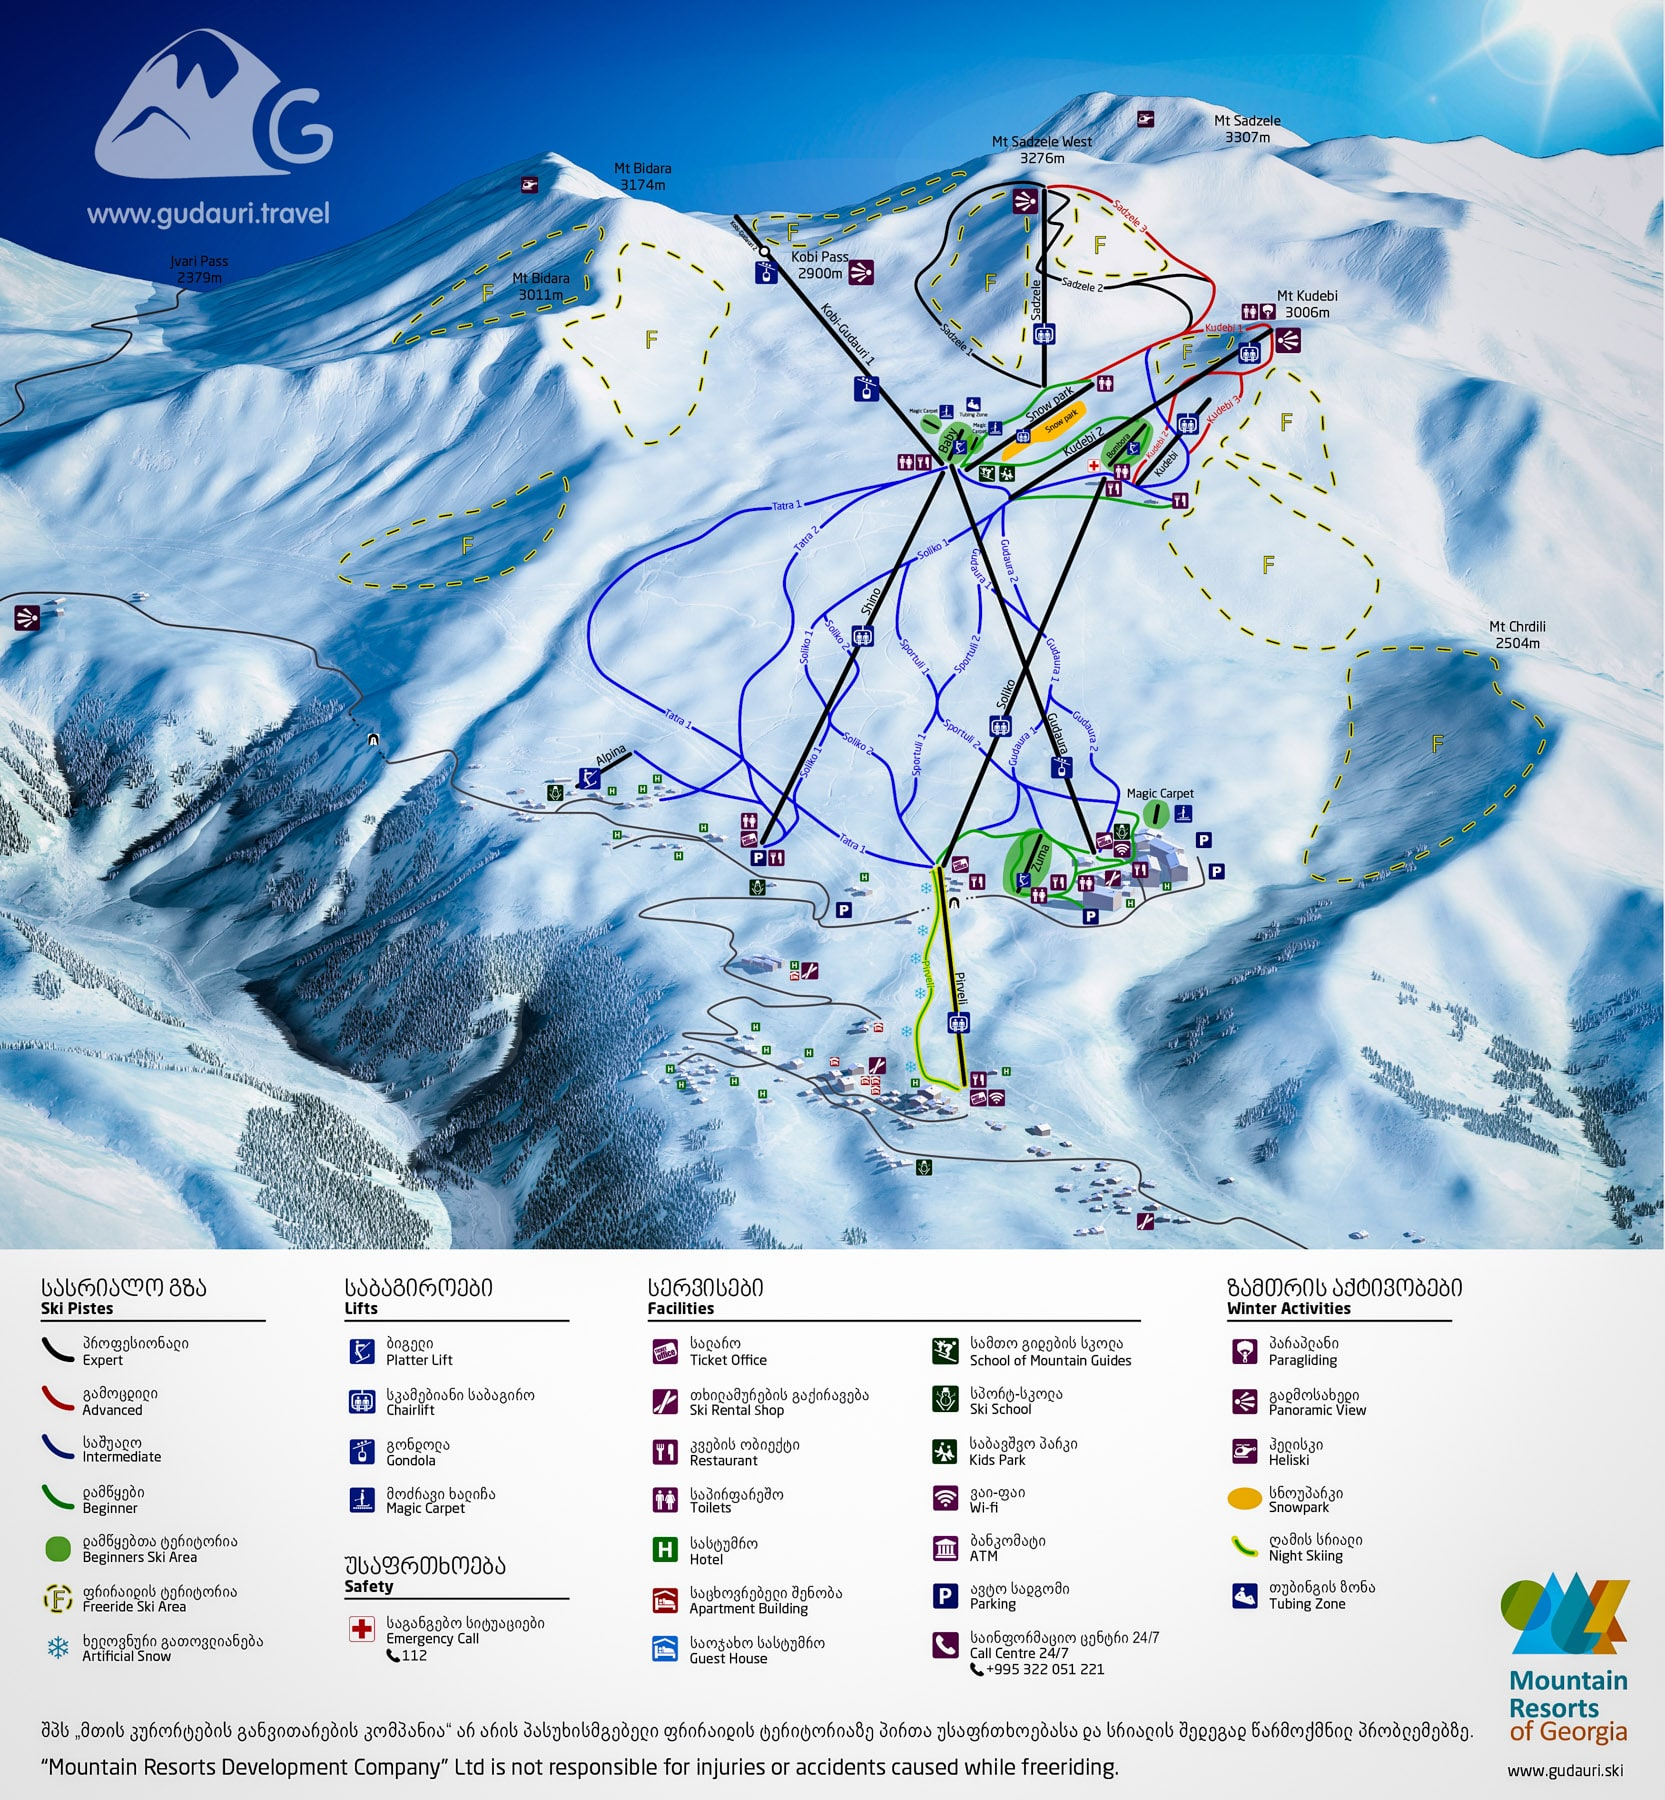 Map Of Ski Lifts And Ski Trails In The Gudauri Ski Resort Georgia - Eastern-us-ski-resorts-map